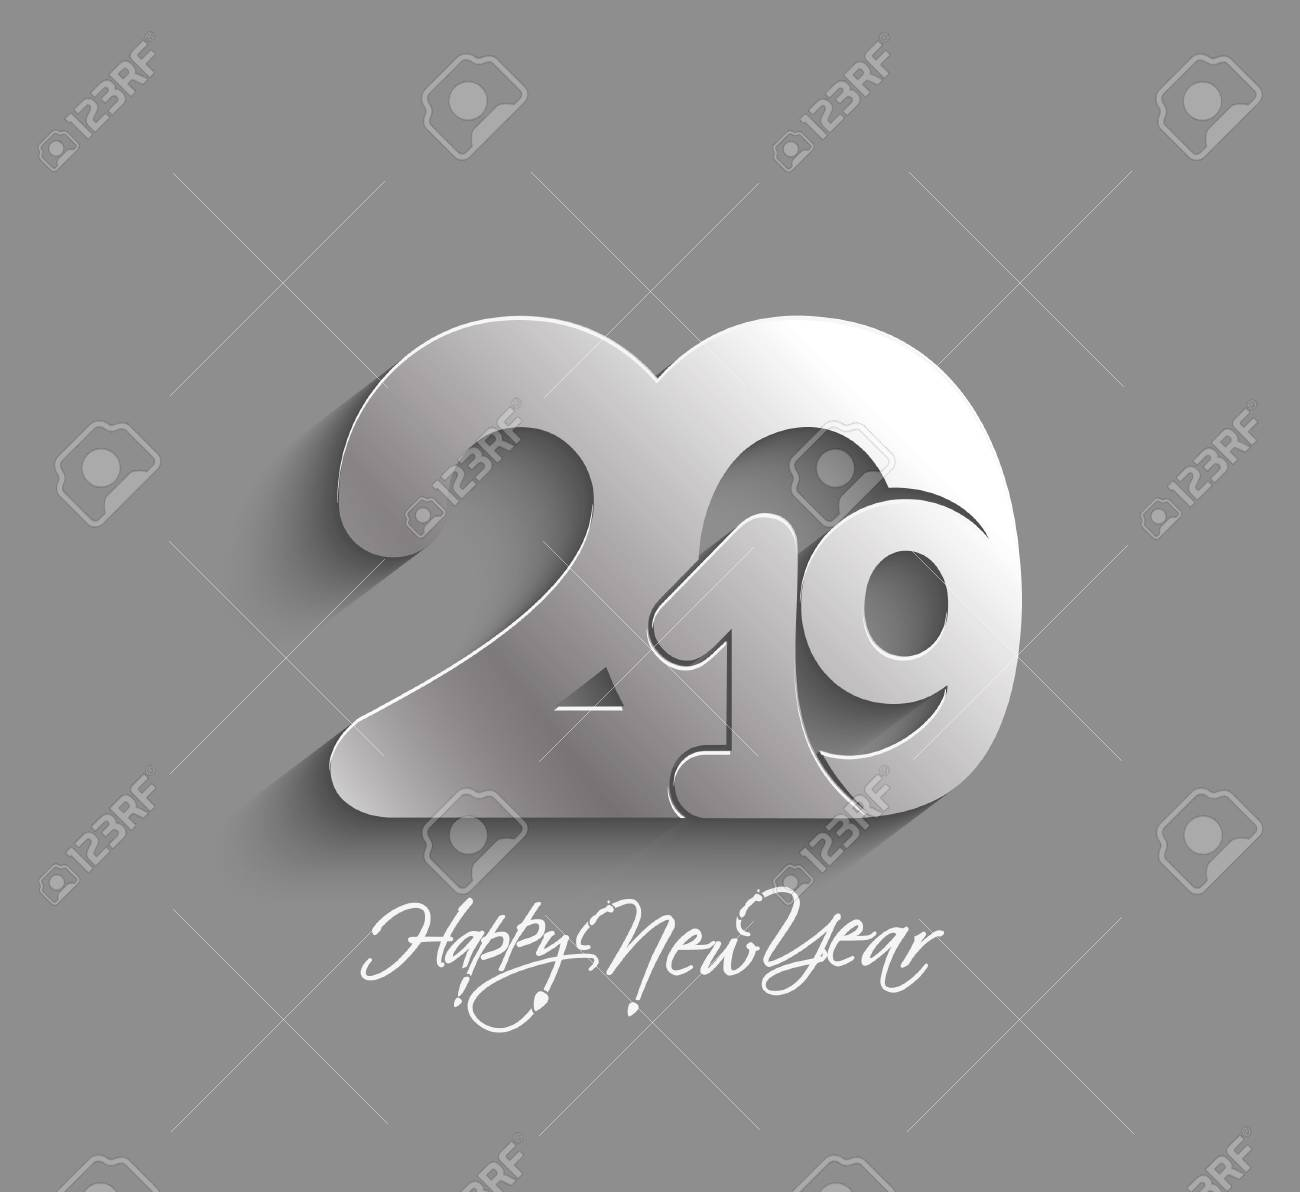 Happy New Year 2019 Text Design Patter, Vector illustration. - 110507264